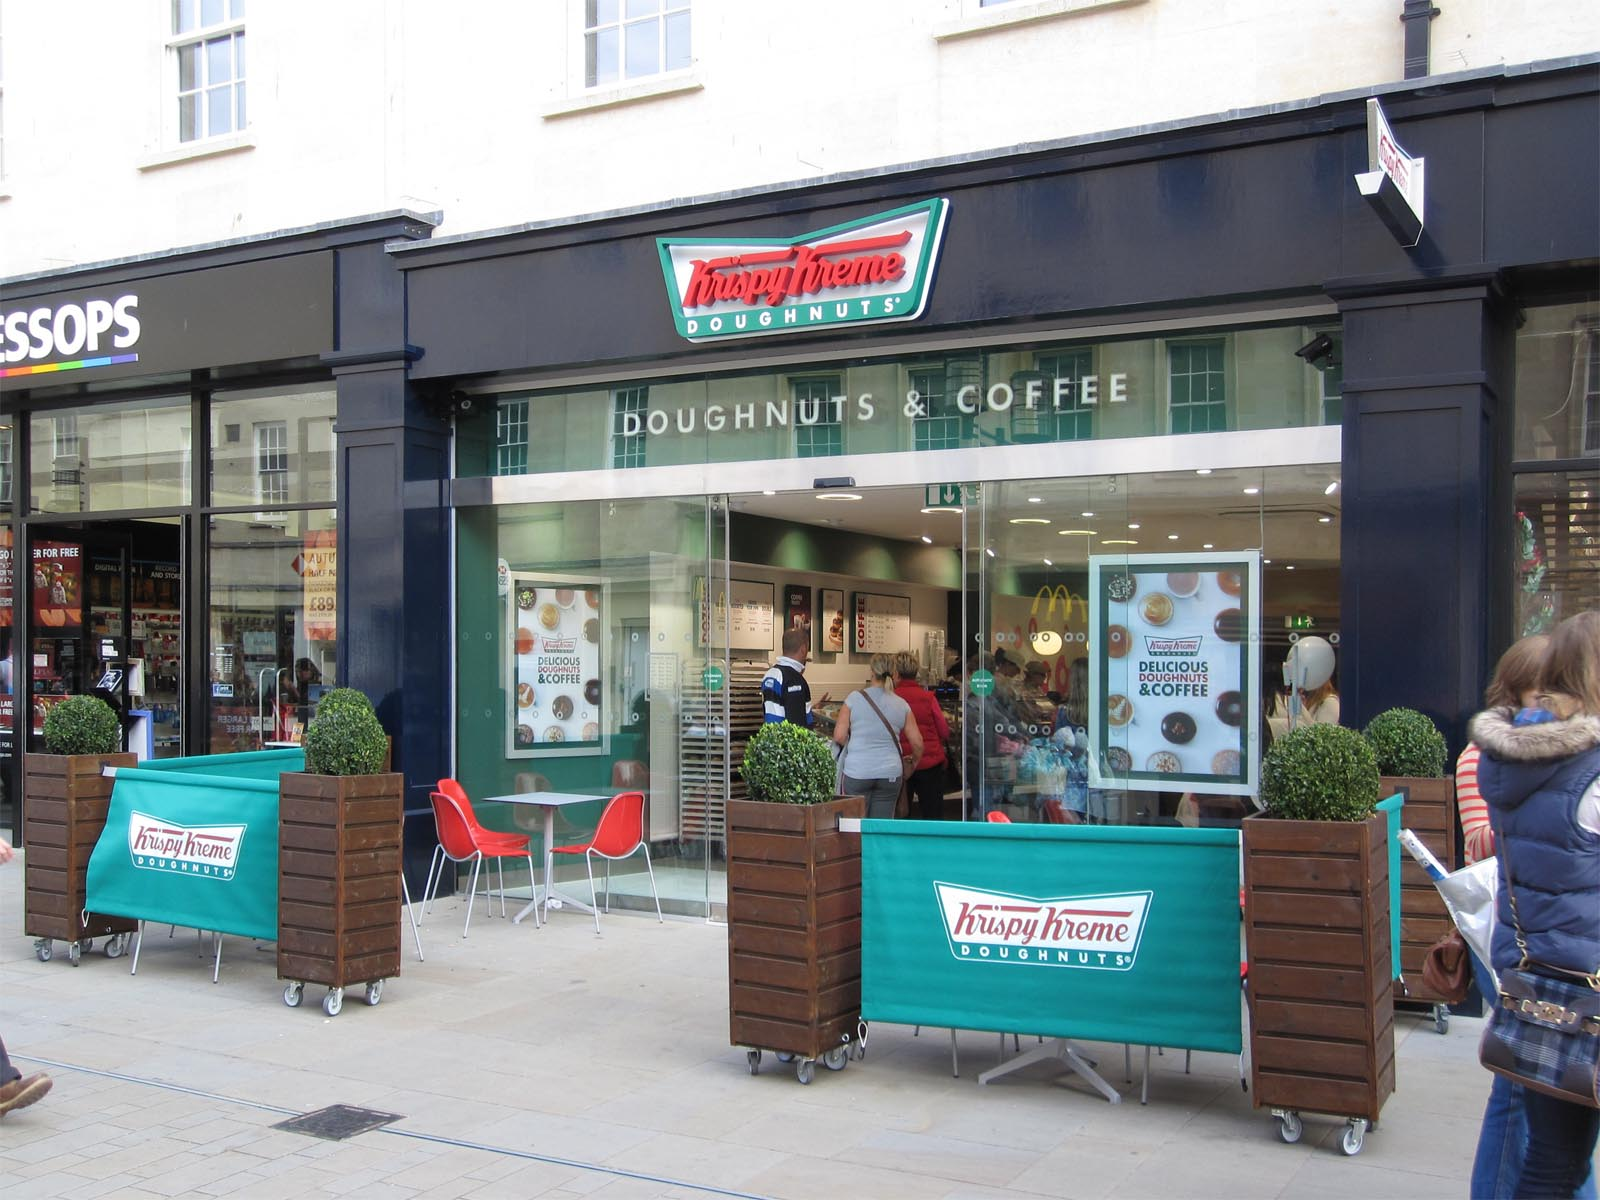 For generations, Krispy Kreme has been serving delicious doughnuts and coffee. Stop by for an Original Glazed doughnut or other variety paired with a hot or iced coffee.